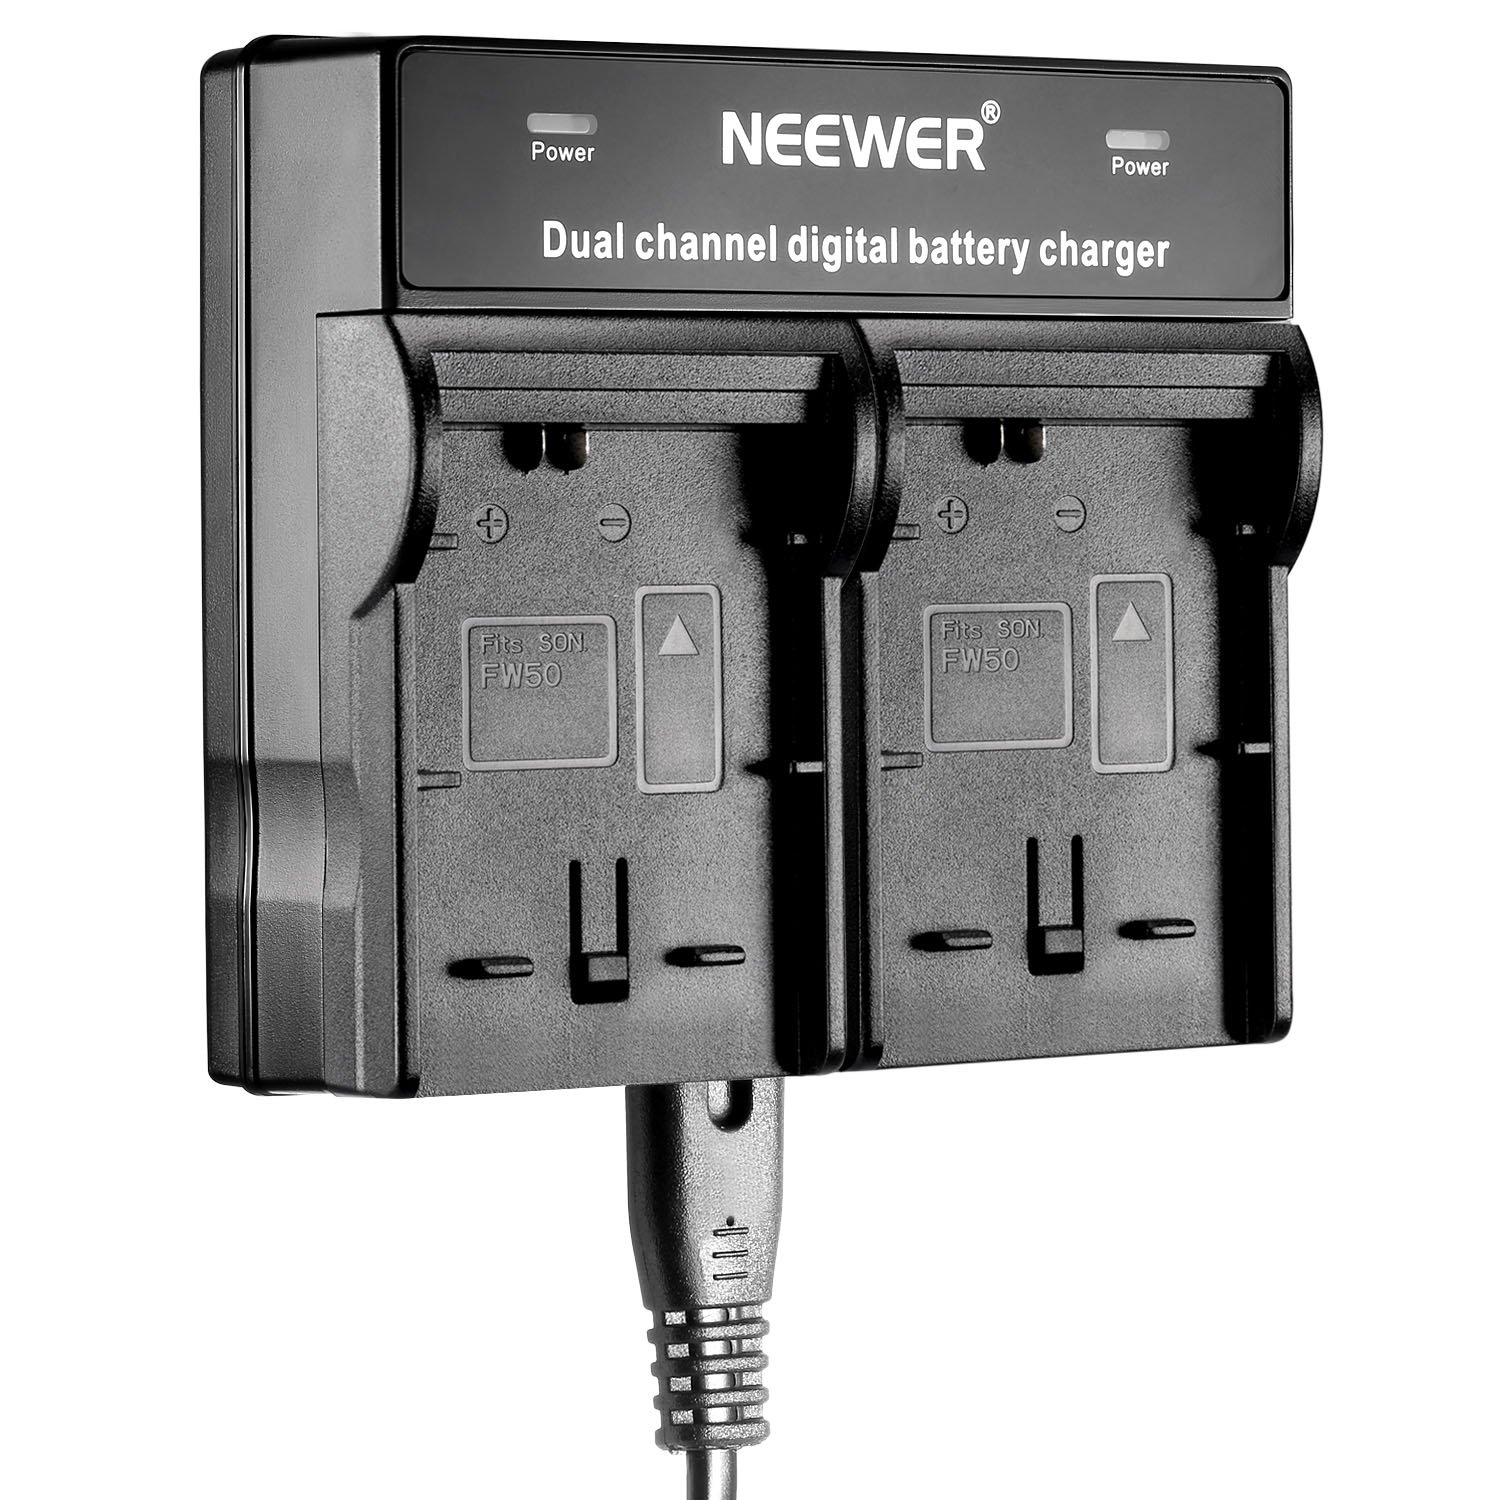 Neewer® Dual-Channel Battery Charger for Sony NP-FW50 Batteries Compatible With Sony NEX-3 NEX-5 NEX-6 NEX-7 NEX-C3 NEX-F3 SLT-A33 SLT-A37 SLT-A55 A3000 A3500 A5000 A5100 A6000 A7 A7R A7S A7 II 10086250